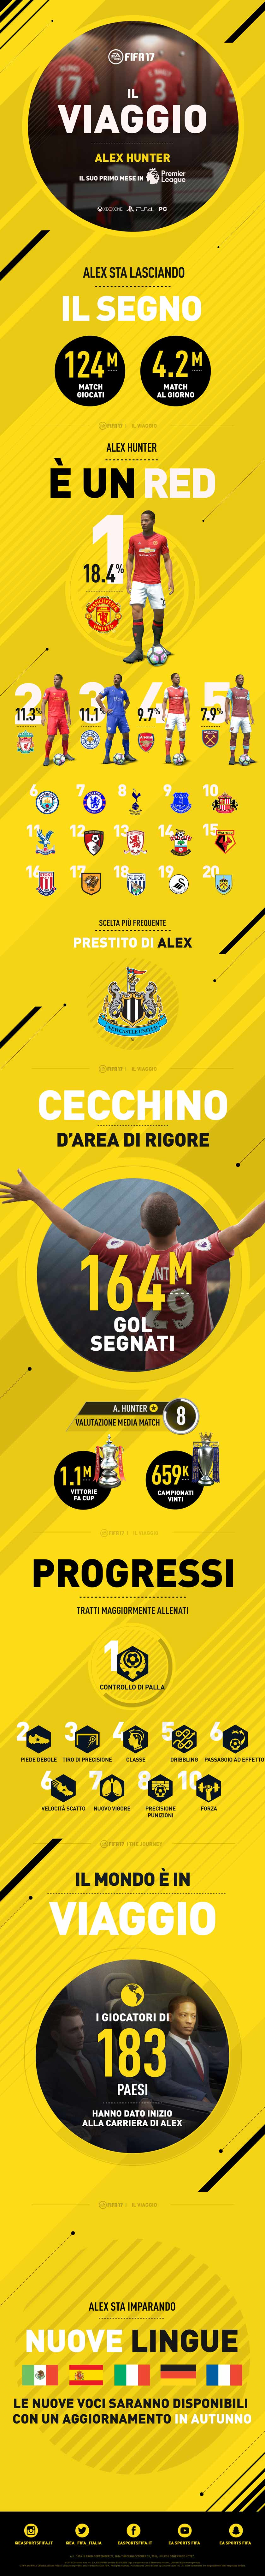 fifa-17-alex_hunter_infografica-gamesoul